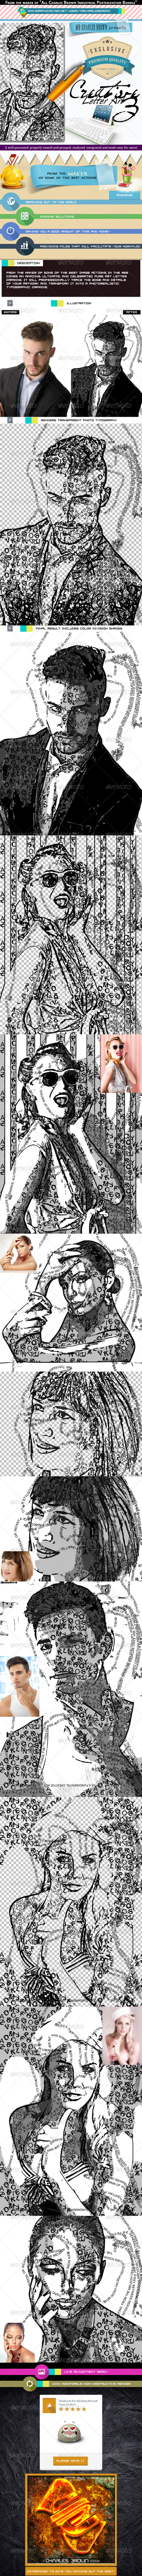 GraphicRiver Creative Letter Art 3 Transparent 6840323